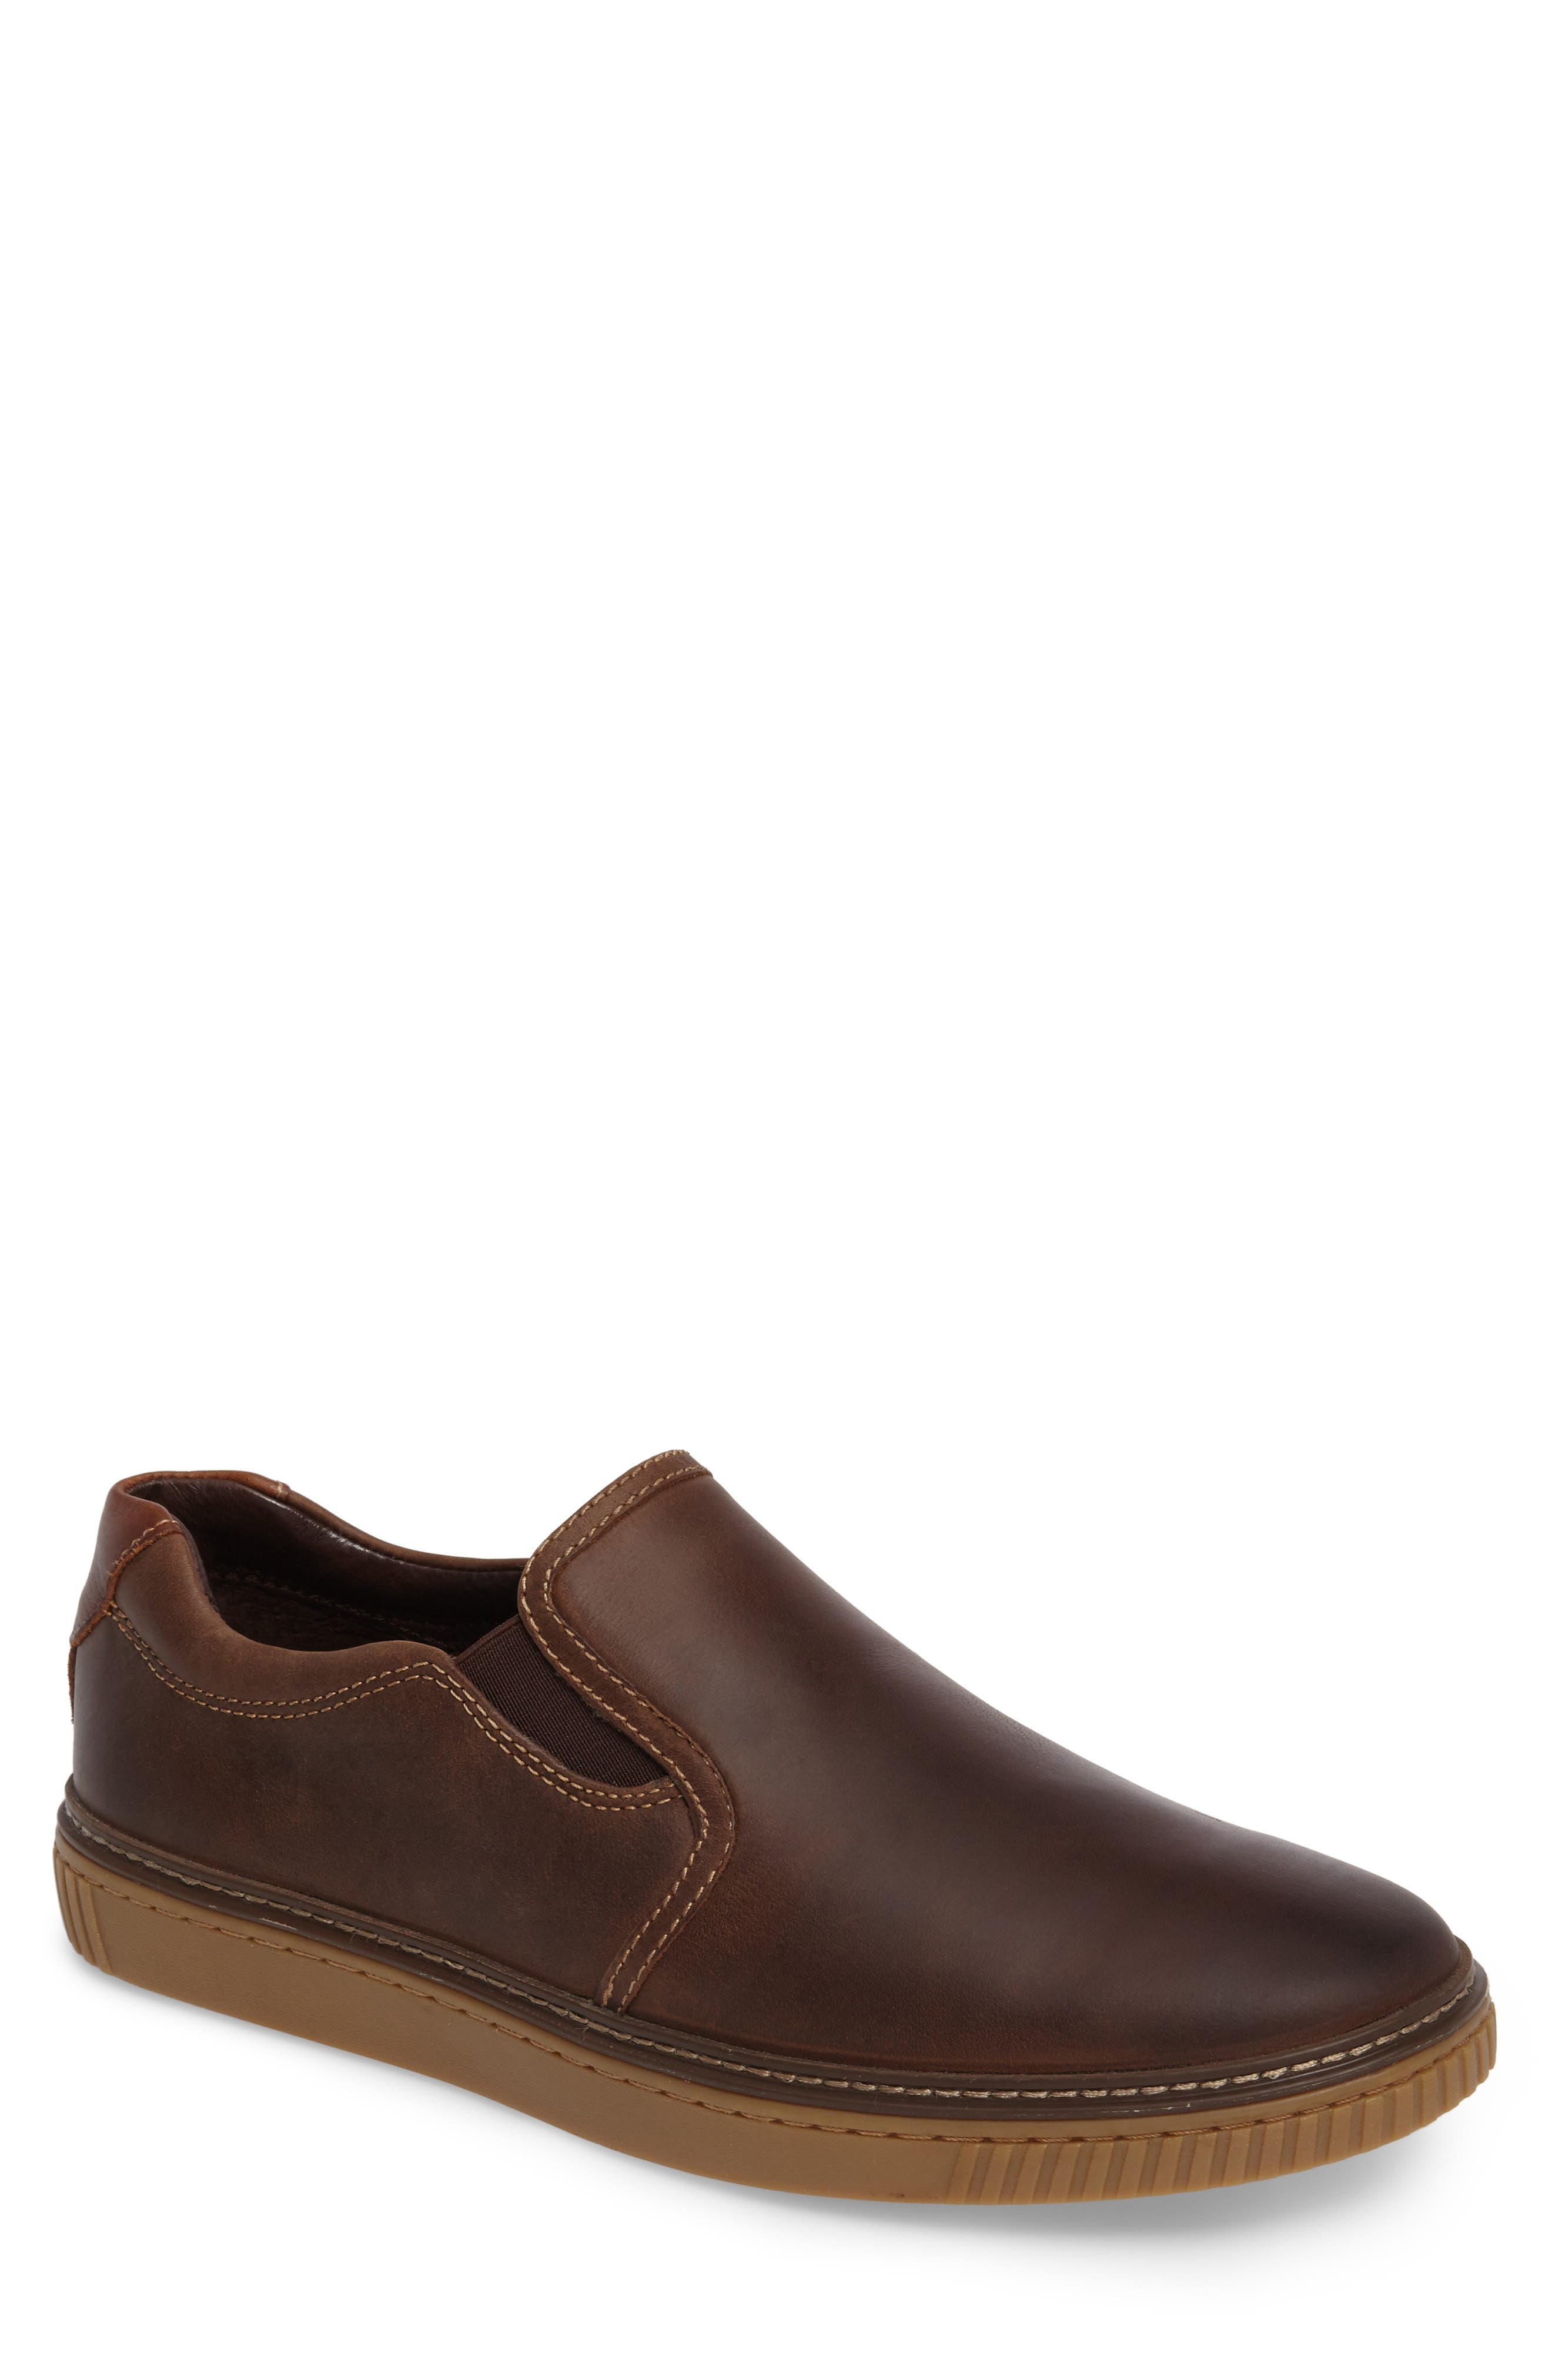 Wallace Slip-On Sneaker,                         Main,                         color, Brown